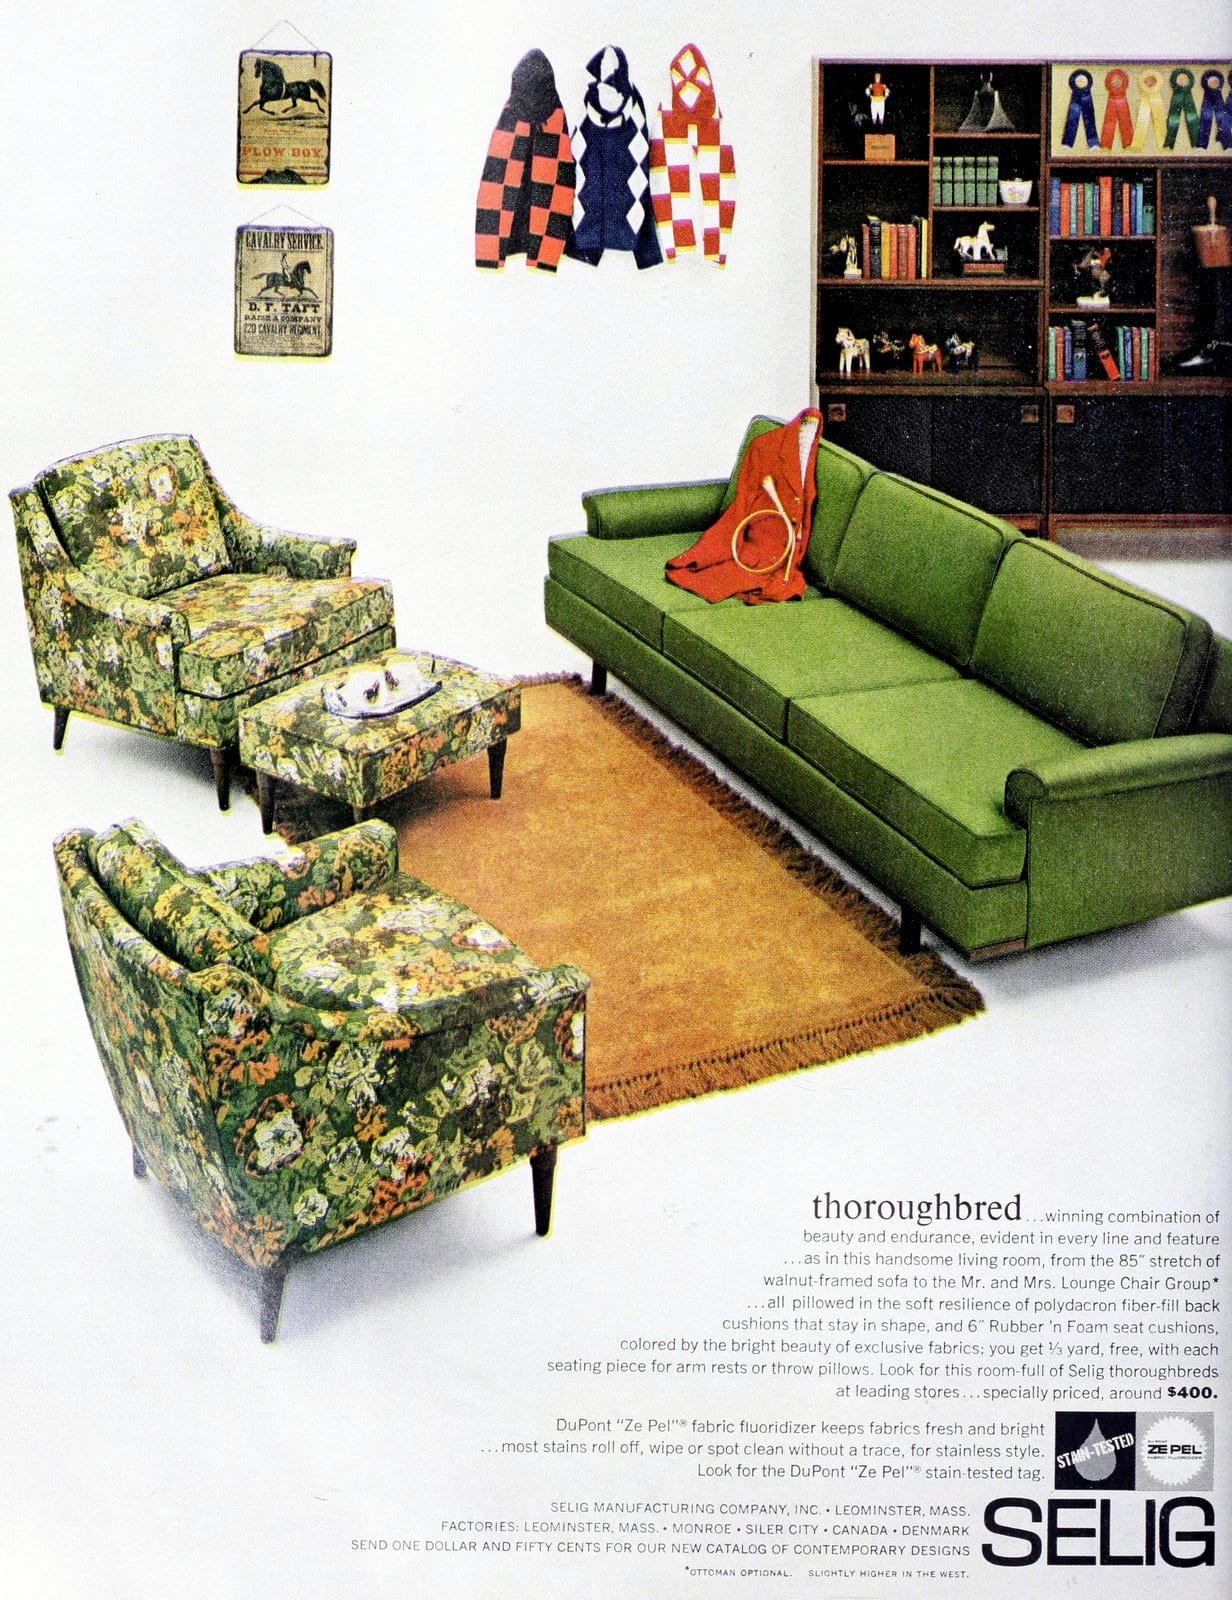 Vintage 1960s living room decor with green sofa and two green floral-pattern chairs (1962)